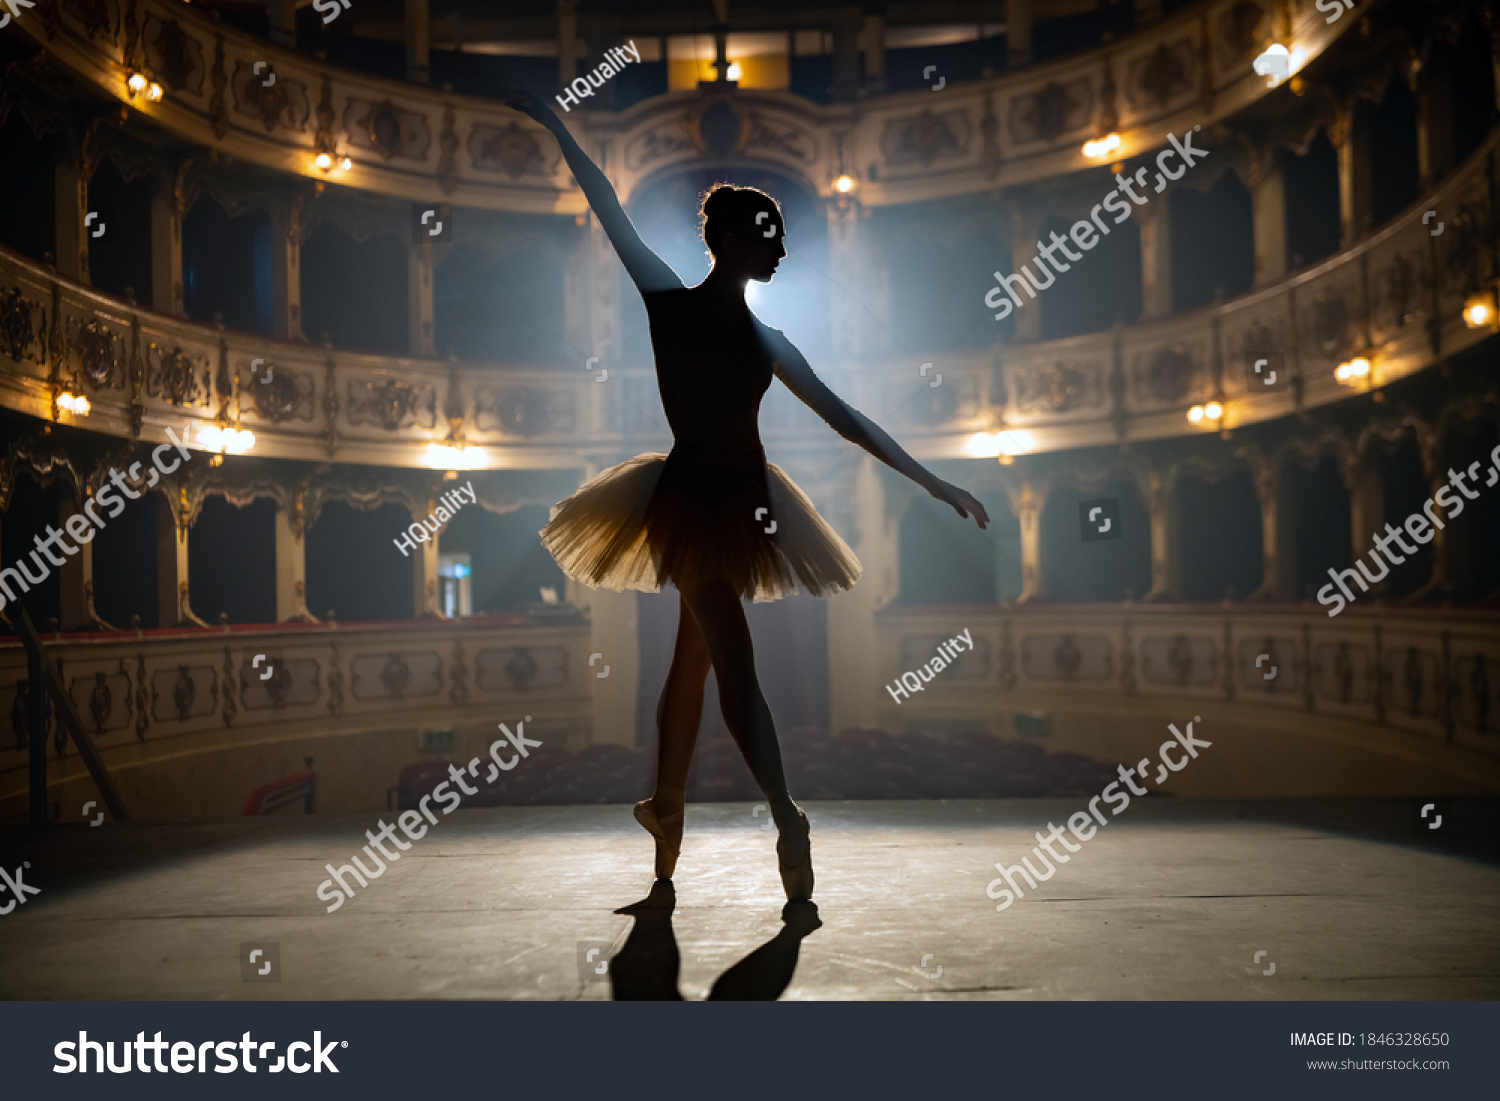 Silhouette of a young graceful classical ballet female dancer in white tutu is performing a choreography on classic theatre stage with dramatic lighting before start of a show. #1846328650